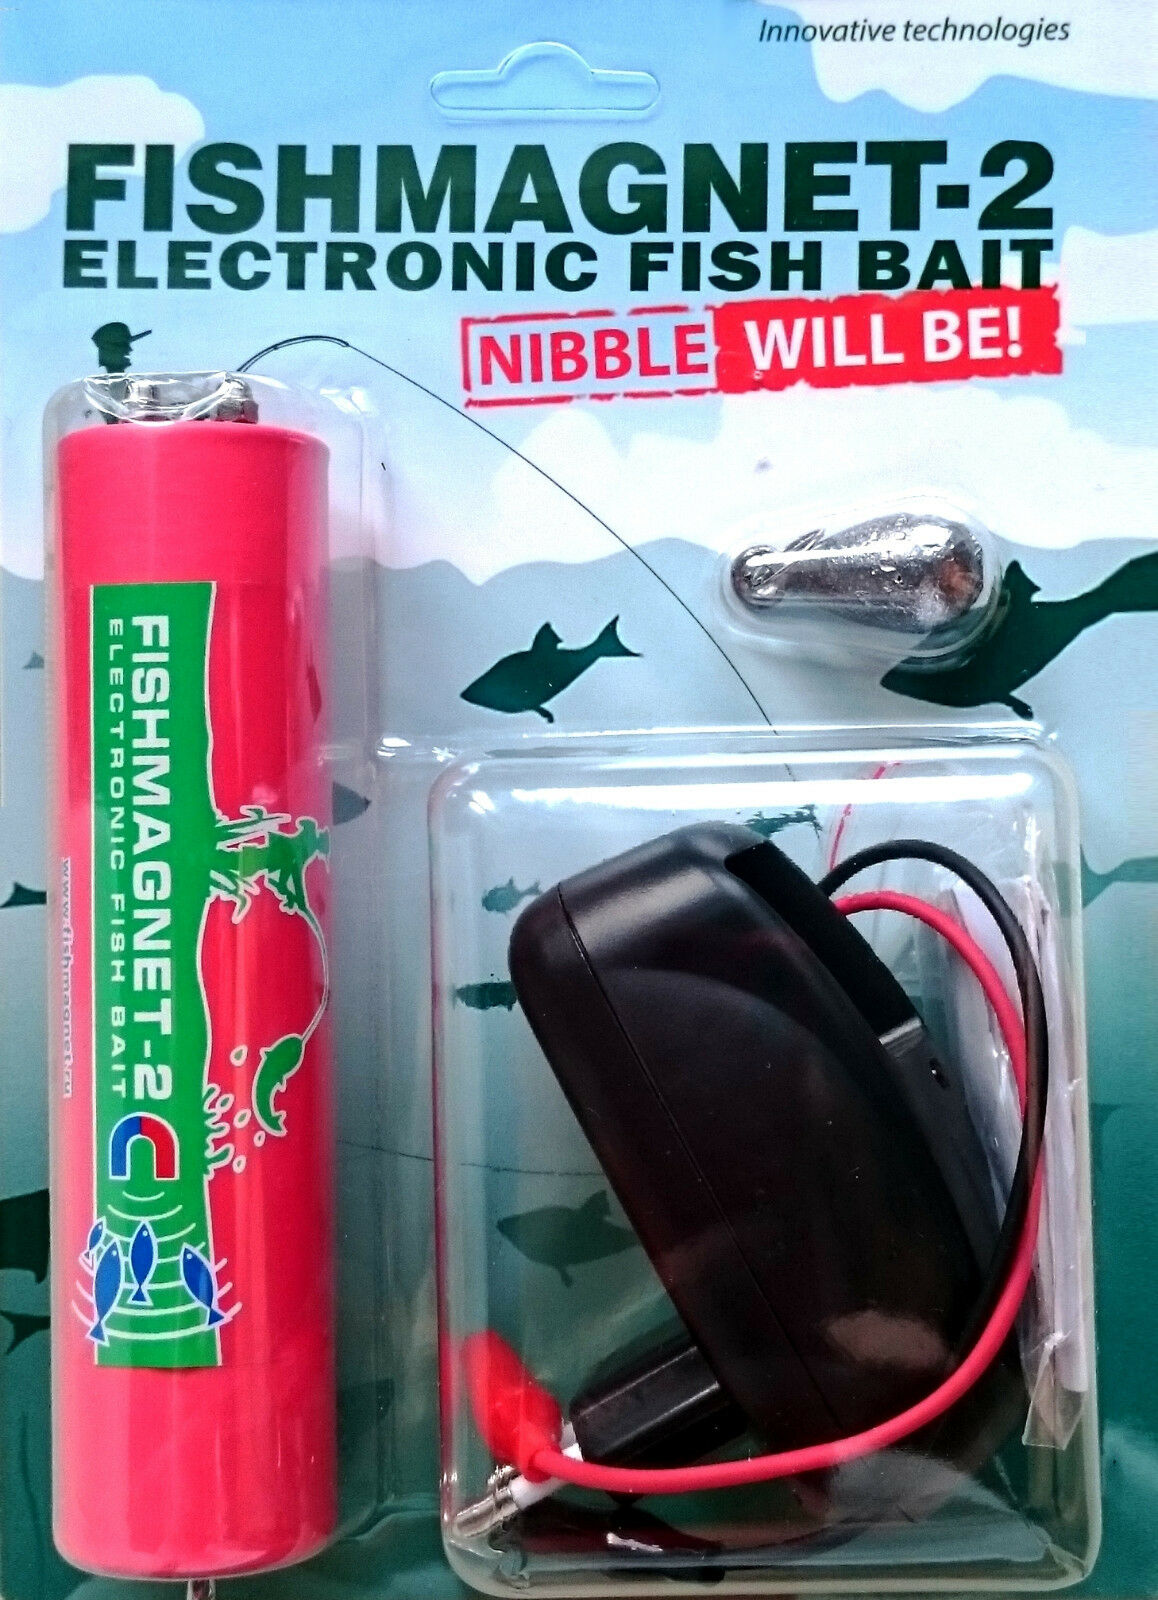 Electronic fish bait Fishmagnet-2 LUX - electronic fish attractor